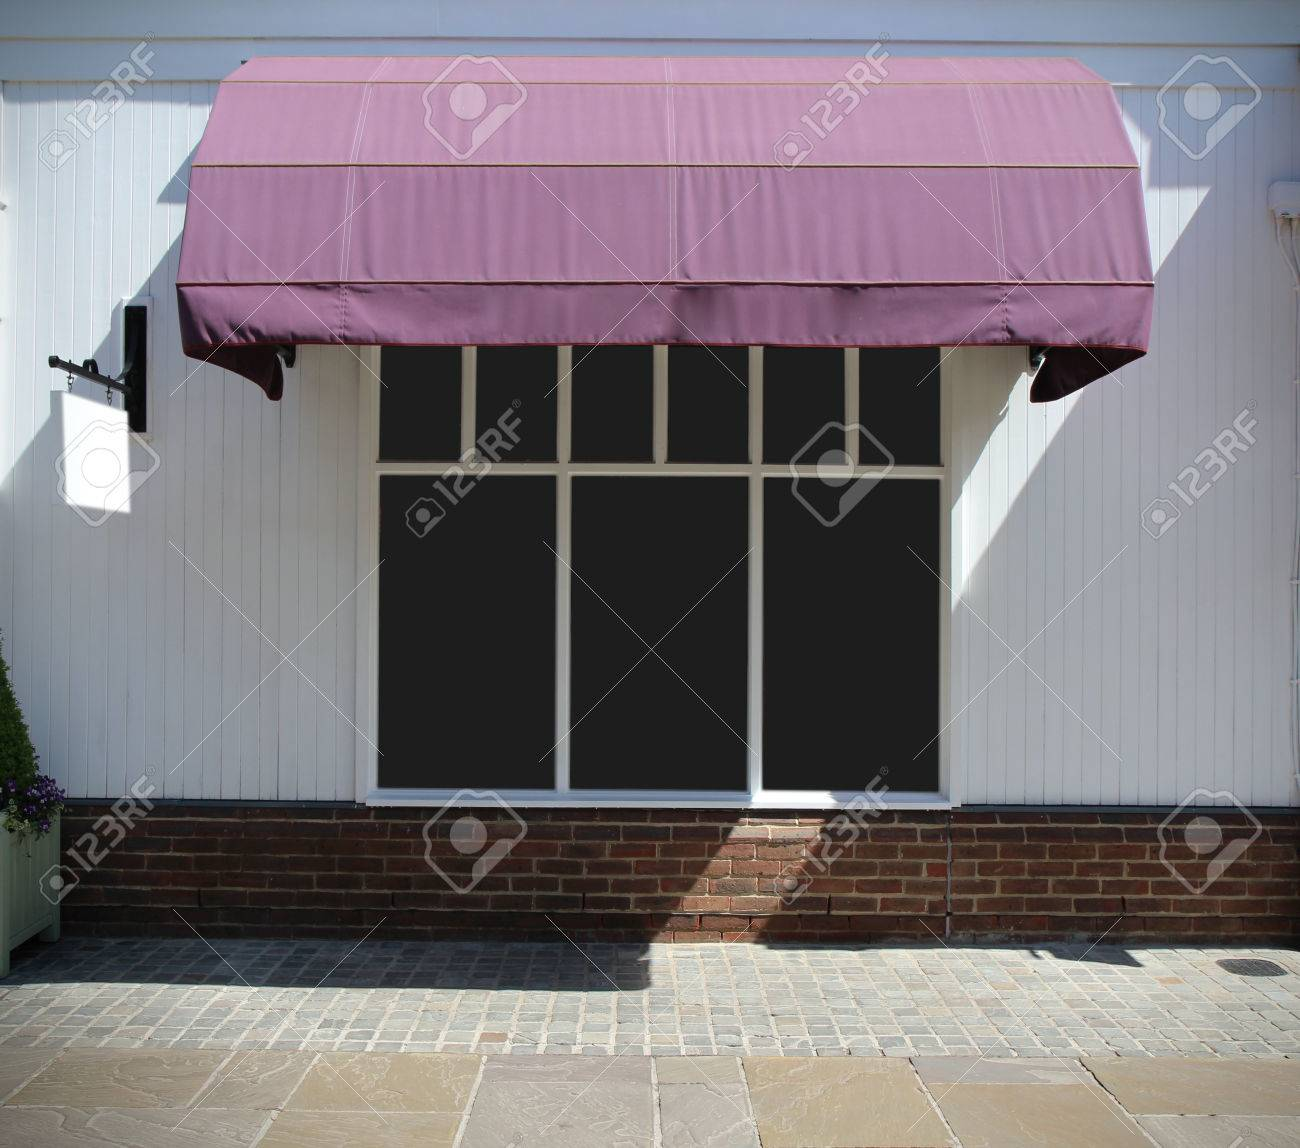 Shopfront Vintage Store Front With Canvas Awnings And Blank Display Stock Photo Picture And Royalty Free Image Image 41504510